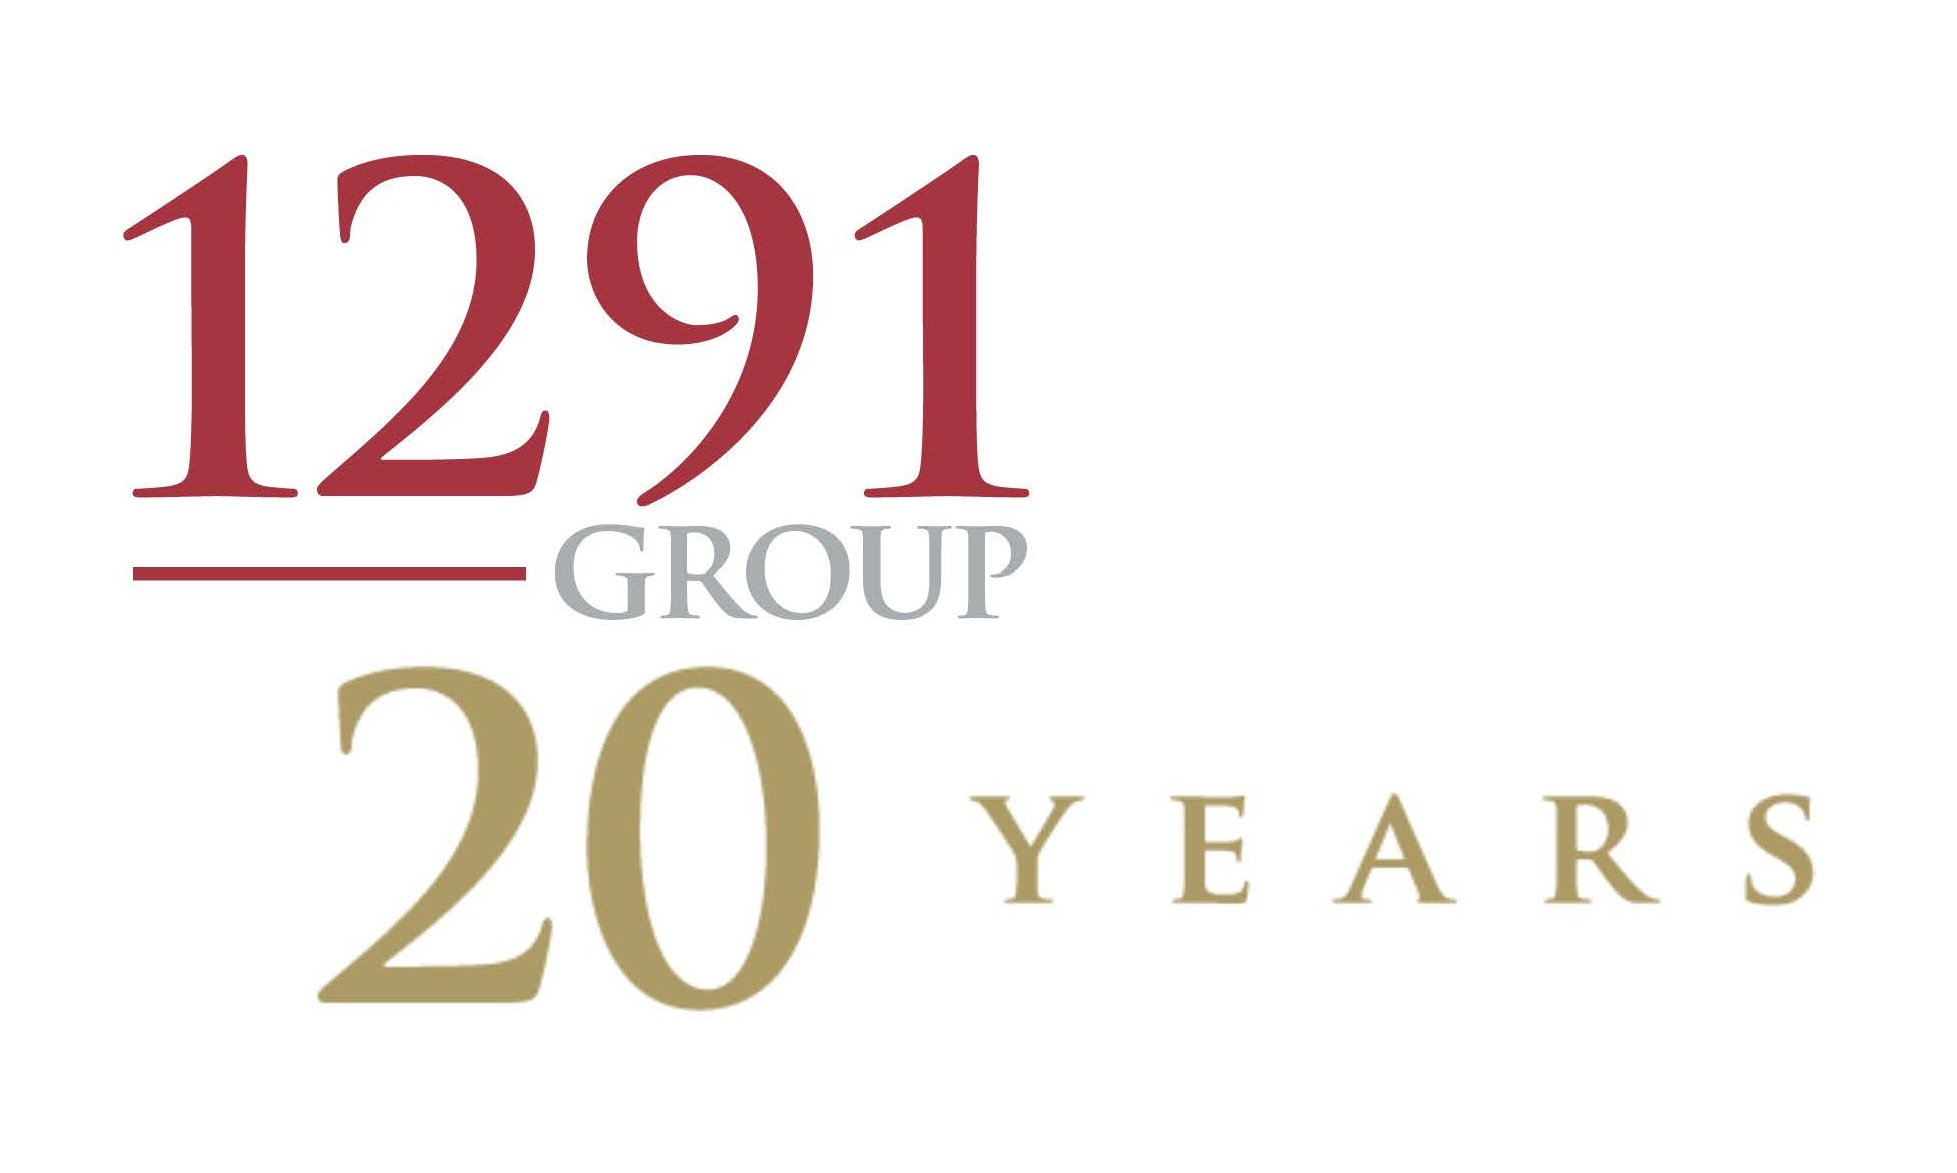 1291 Group